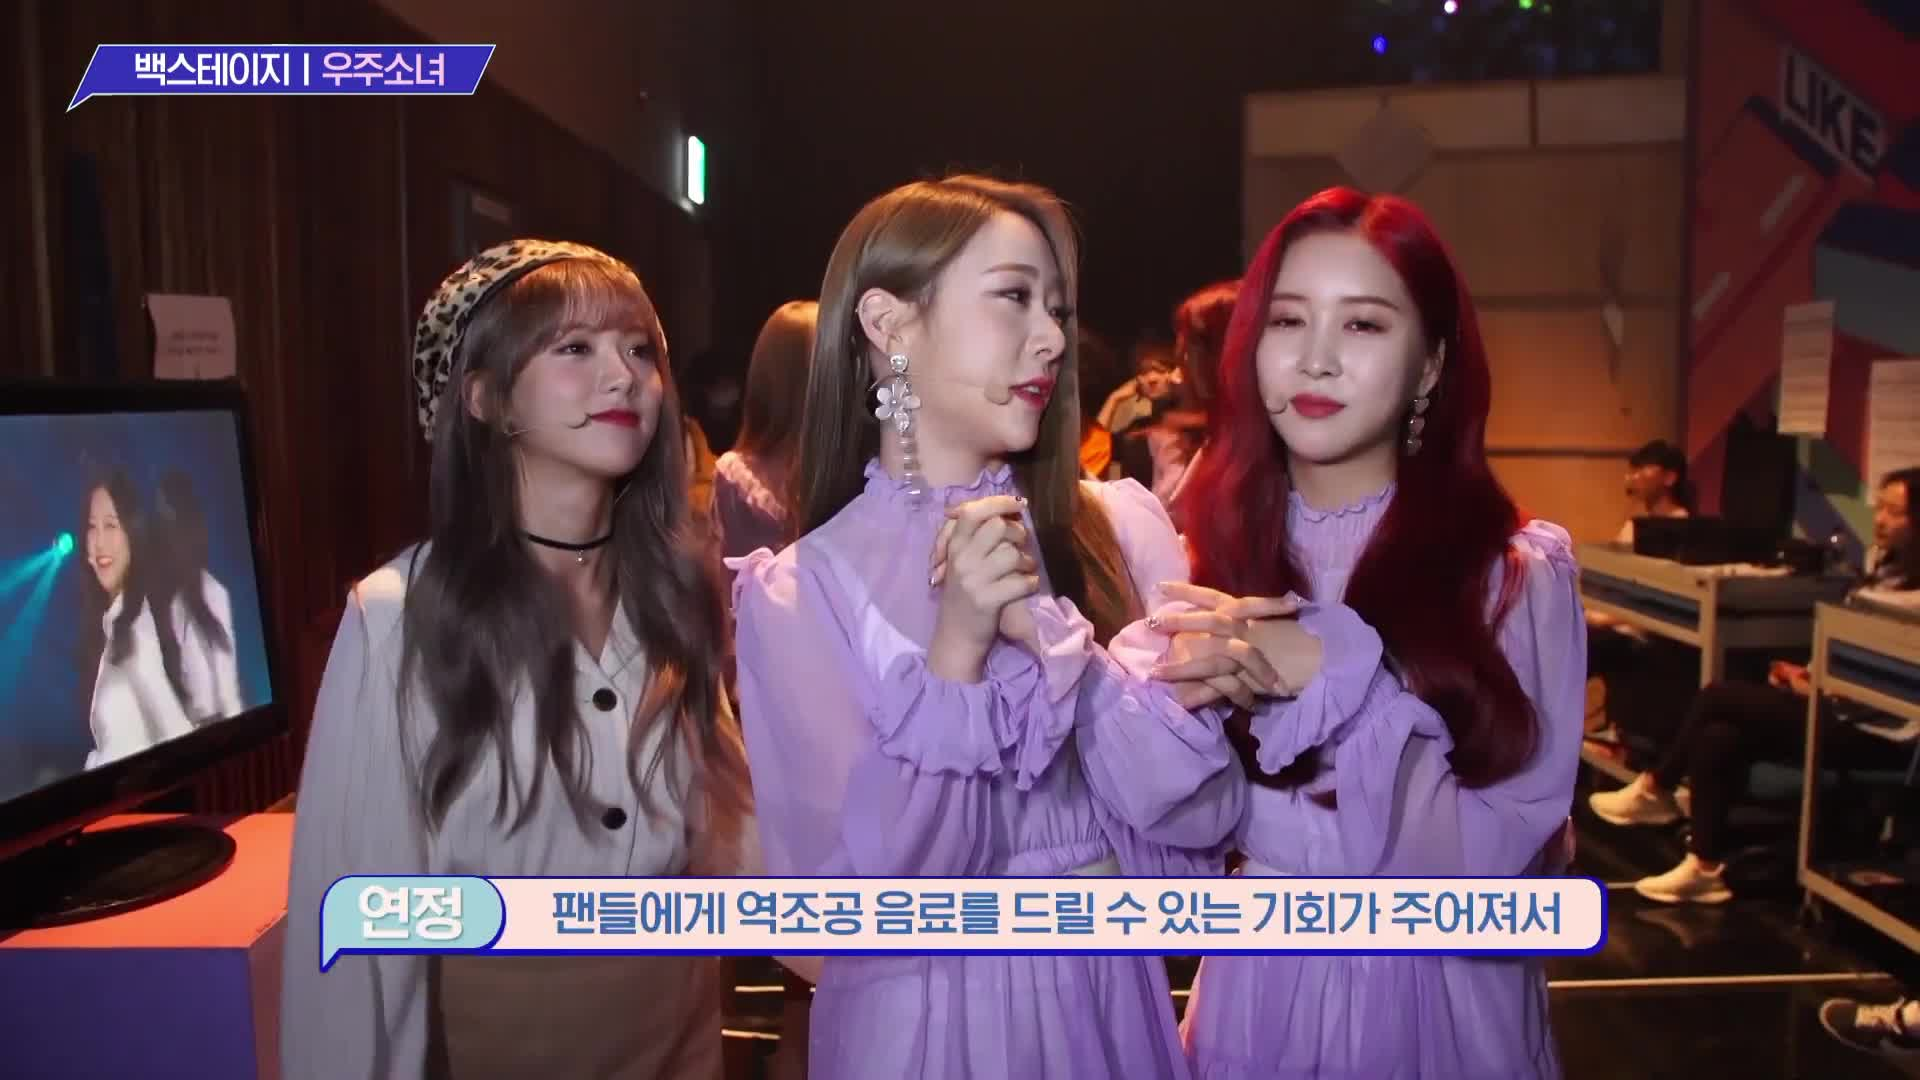 190105 WJSN,LOONA,Dreamcatcher, BACKSTAGE of THE SHOW 165 behind 3 [BEHIND THE SHOW] 18 GIFs